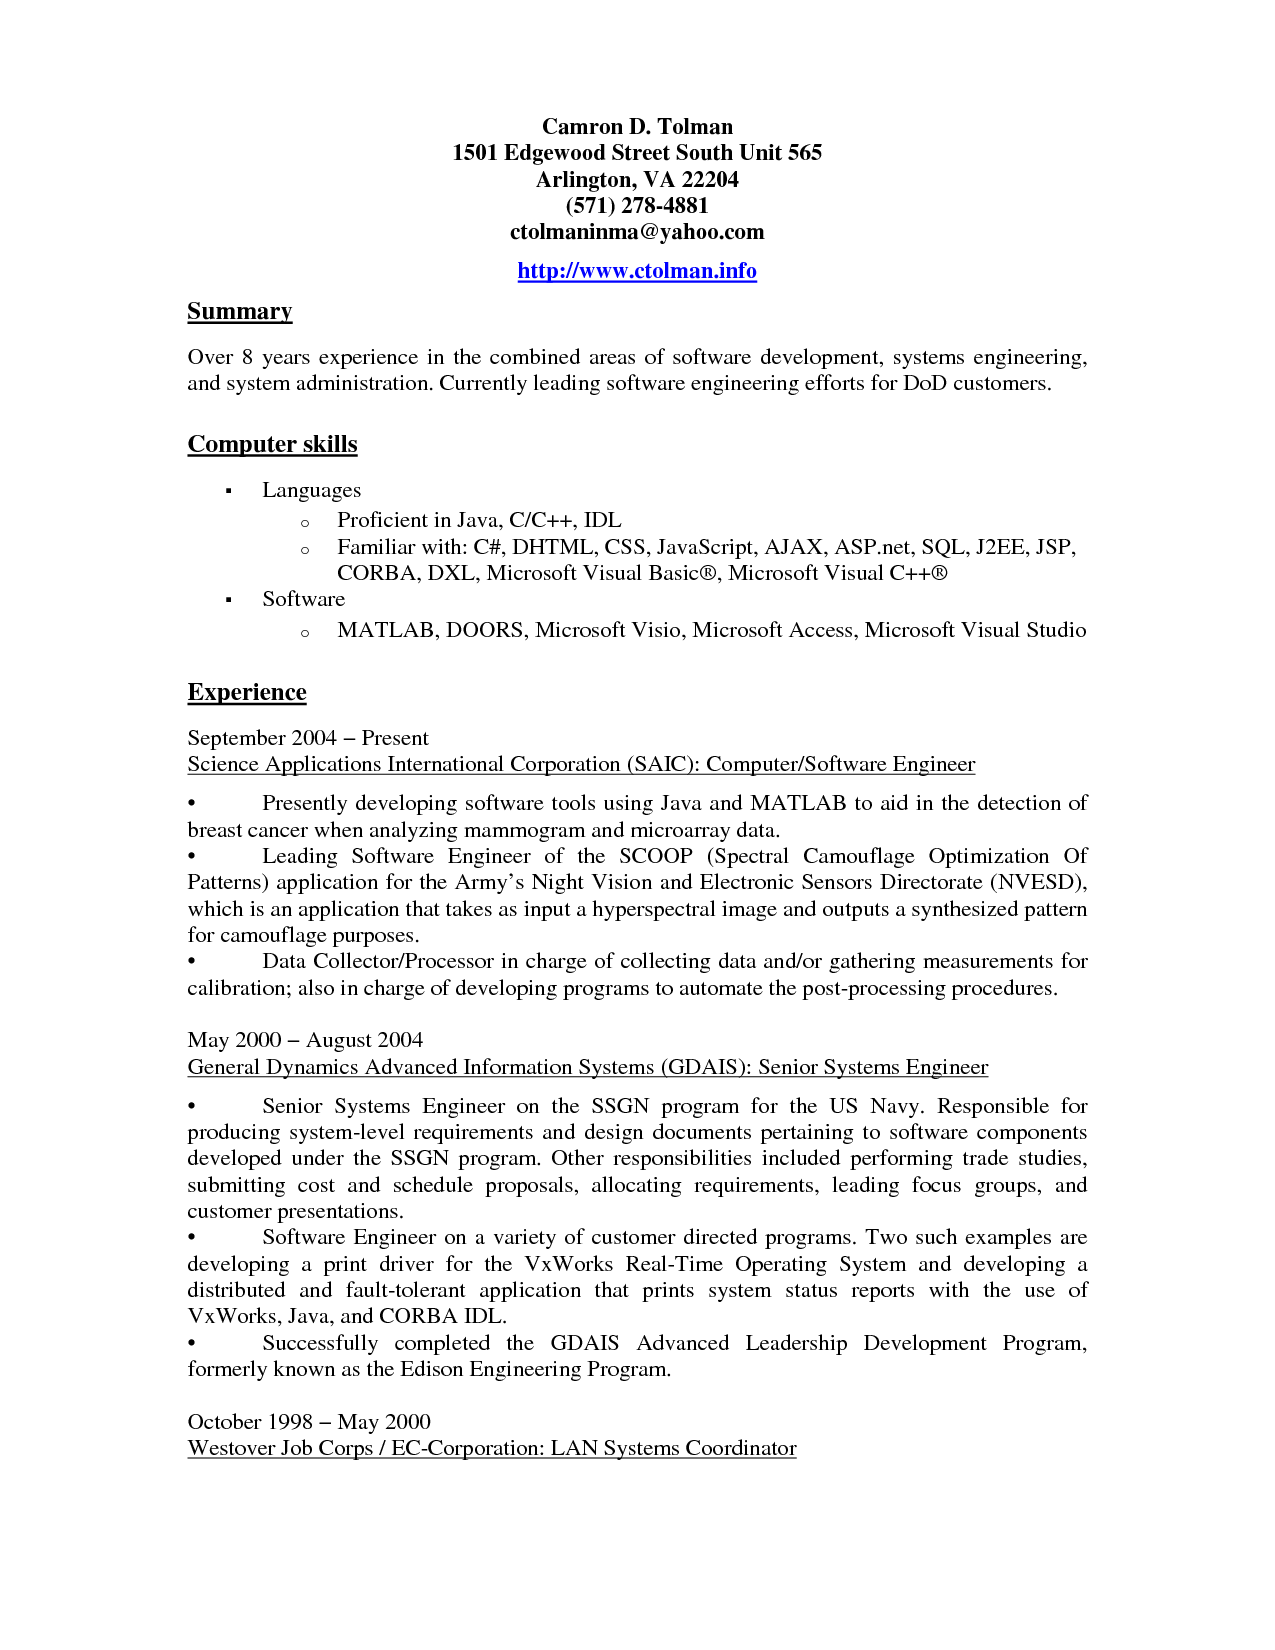 Resume Template Examples Computer Proficiency Resume Sample  Httpwwwresumecareer